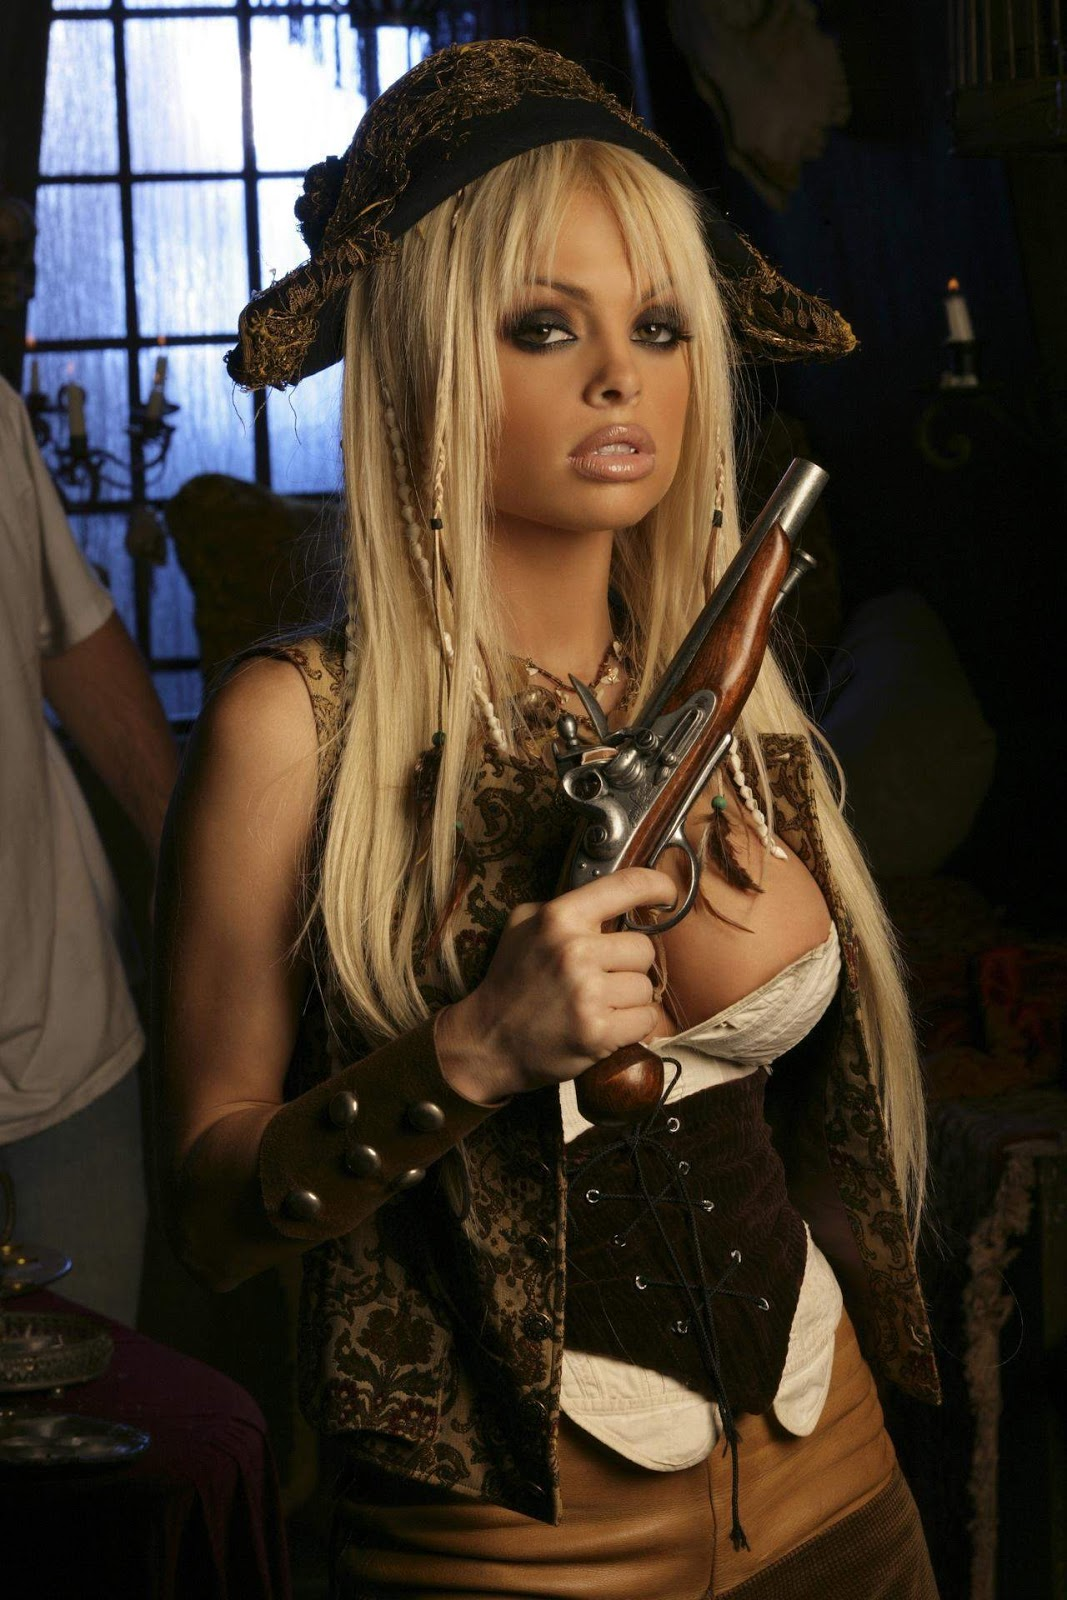 pirates jesse jane